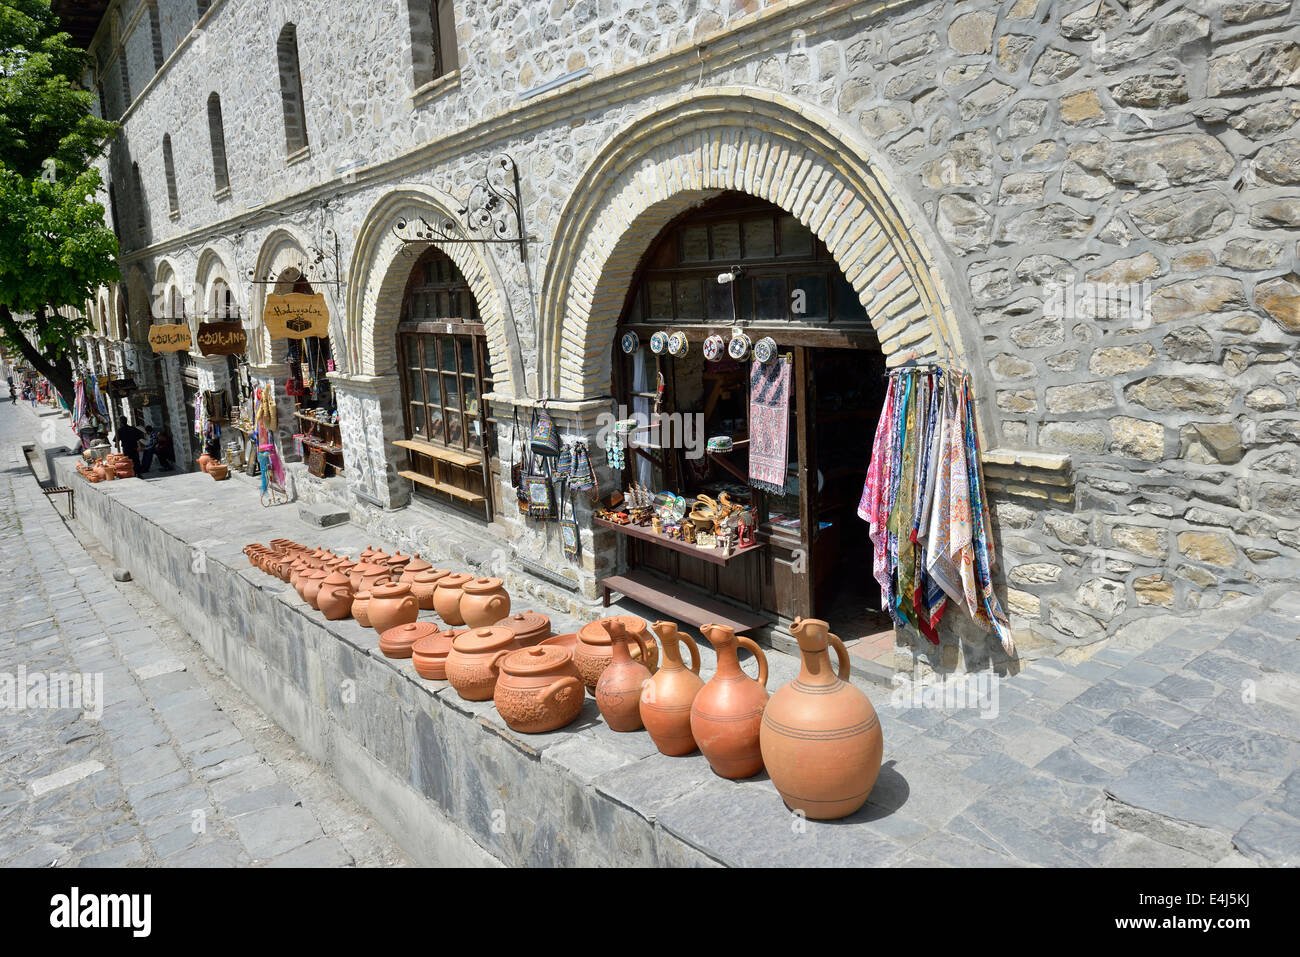 Cool  Shops Outside The 18th Century Caravanserai Sheki Azerbaijan